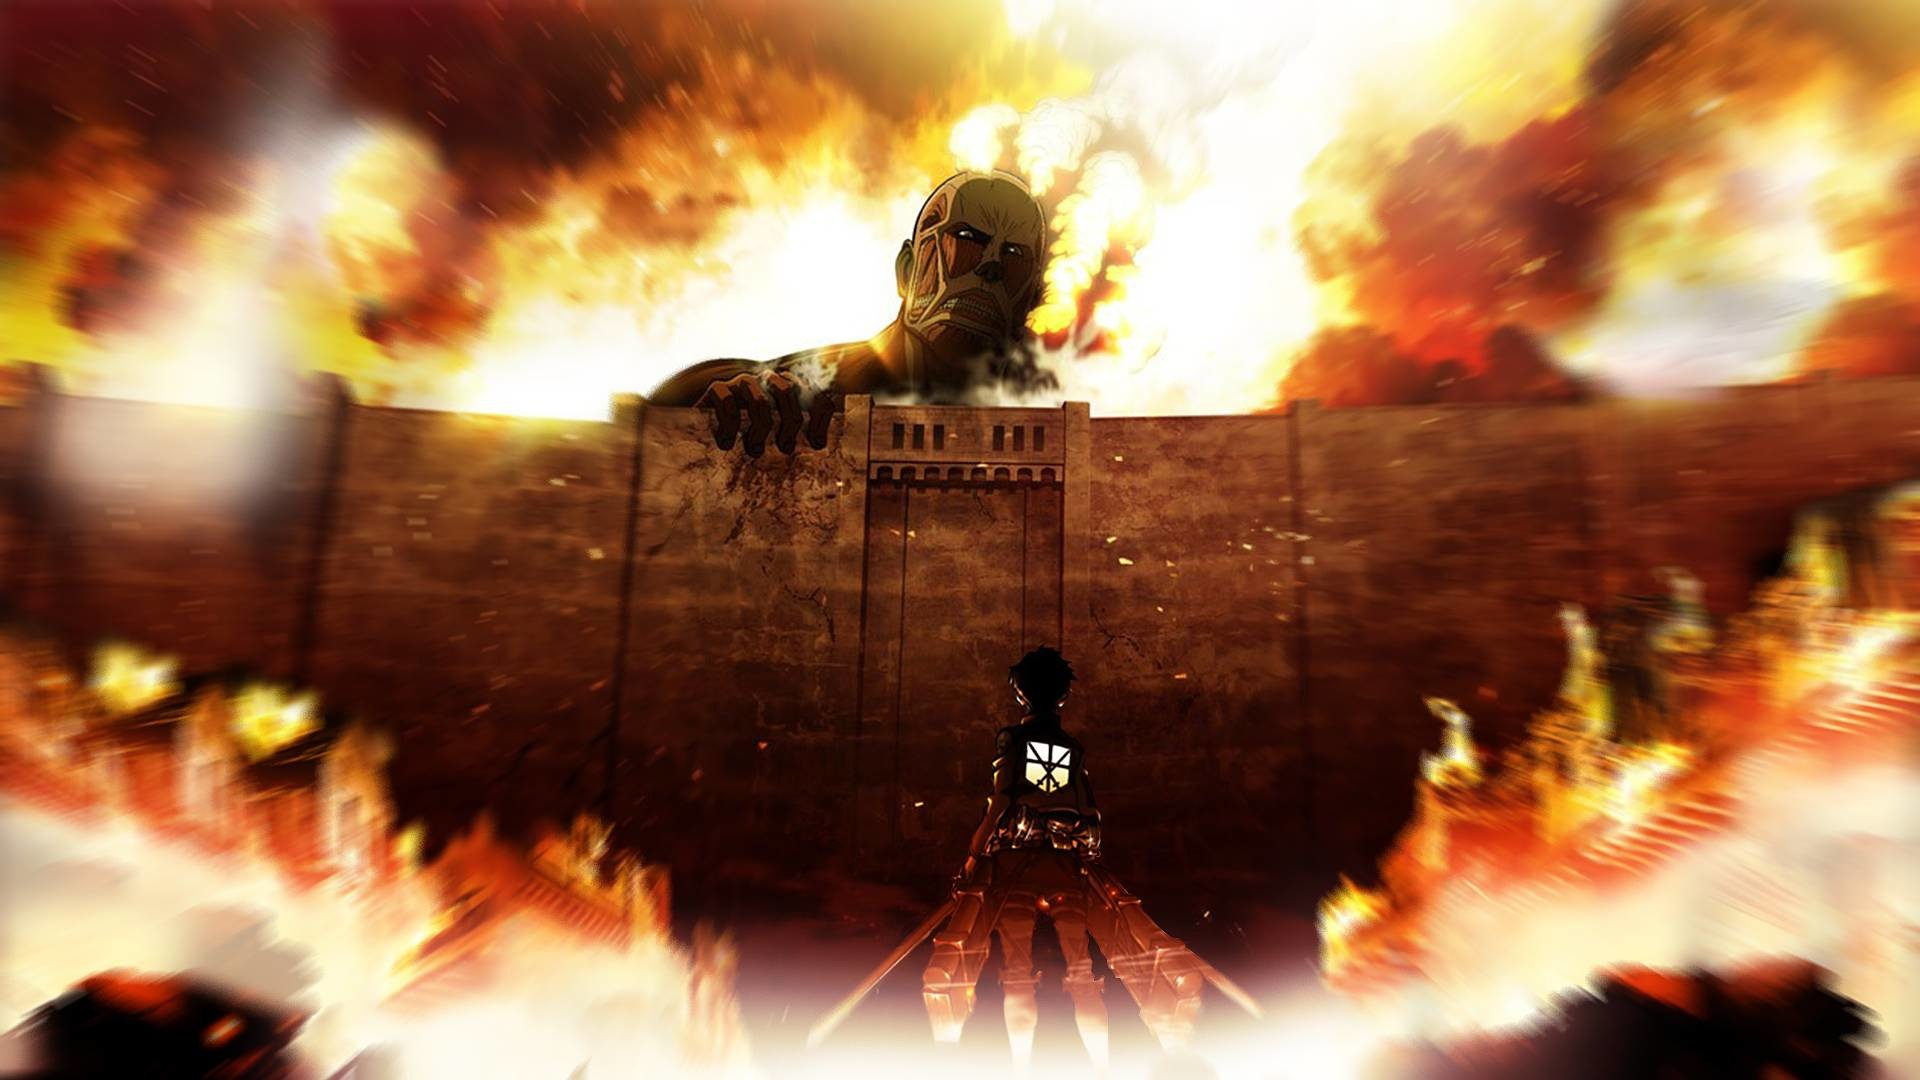 Attack On Titan Wallpaper HD (64+ Images